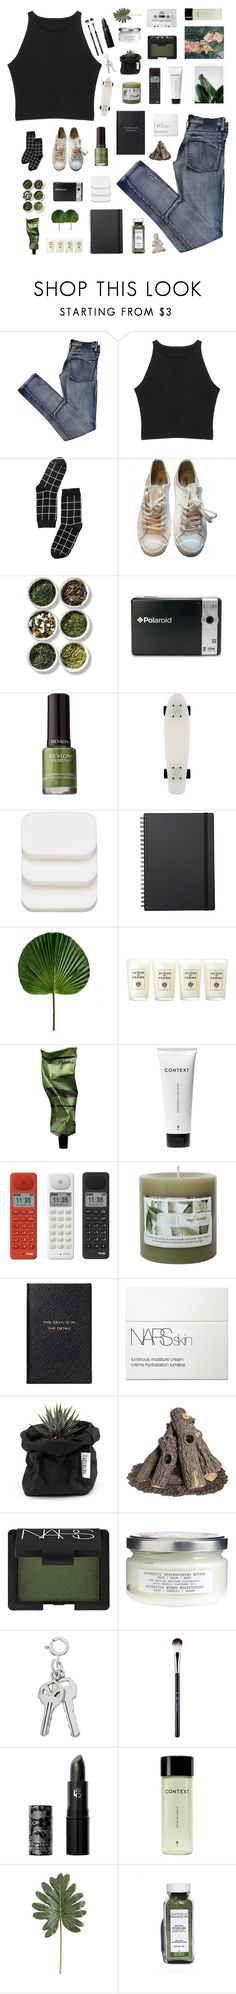 """""""i highly hope you don't ever lie to me"""" by junglex ❤ liked on Polyvore featuring Cheap Monday, Monki, Maison Margiela, Tea Collection, Polaroid, Revlon, COVERGIRL, Muji, Acqua di Parma and Aesop"""